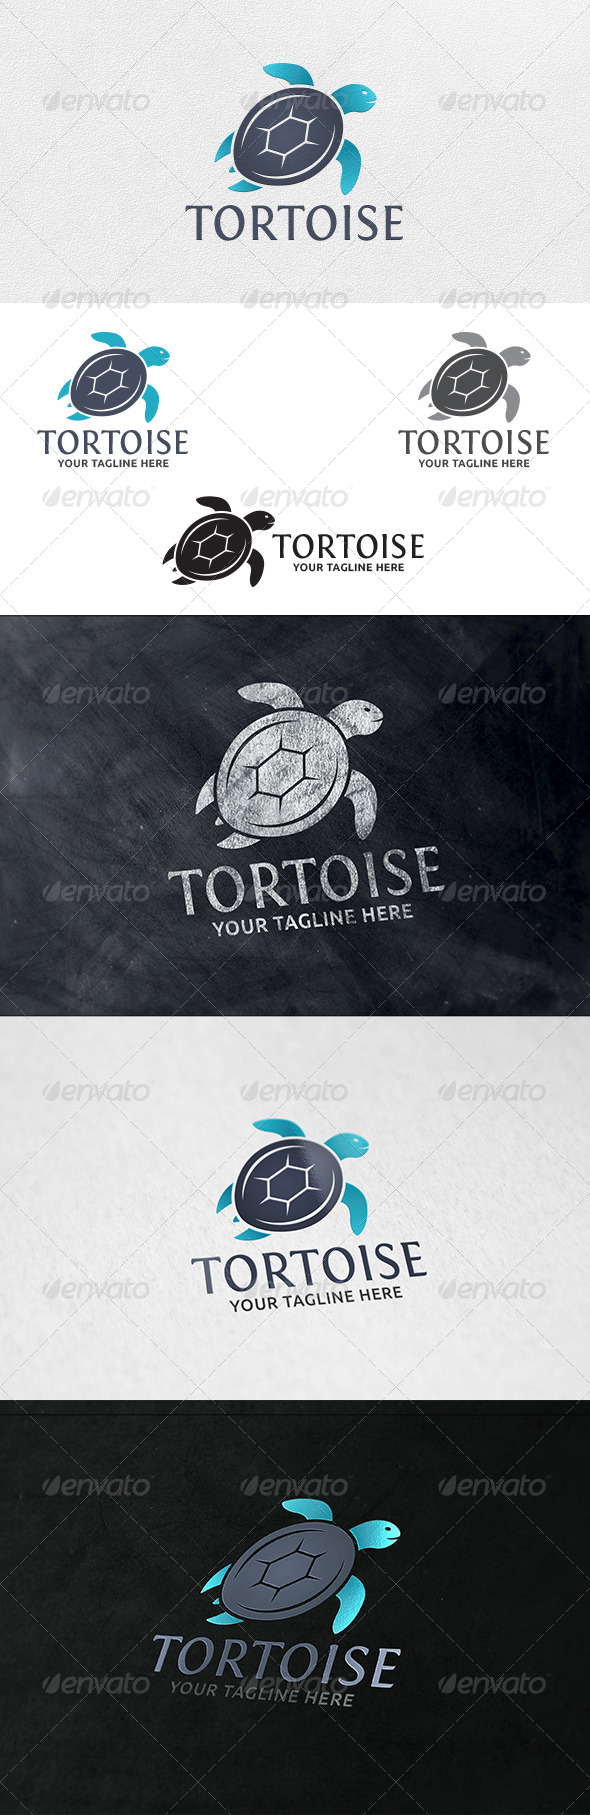 Tortoise - Logo Template - Animals Logo Templates